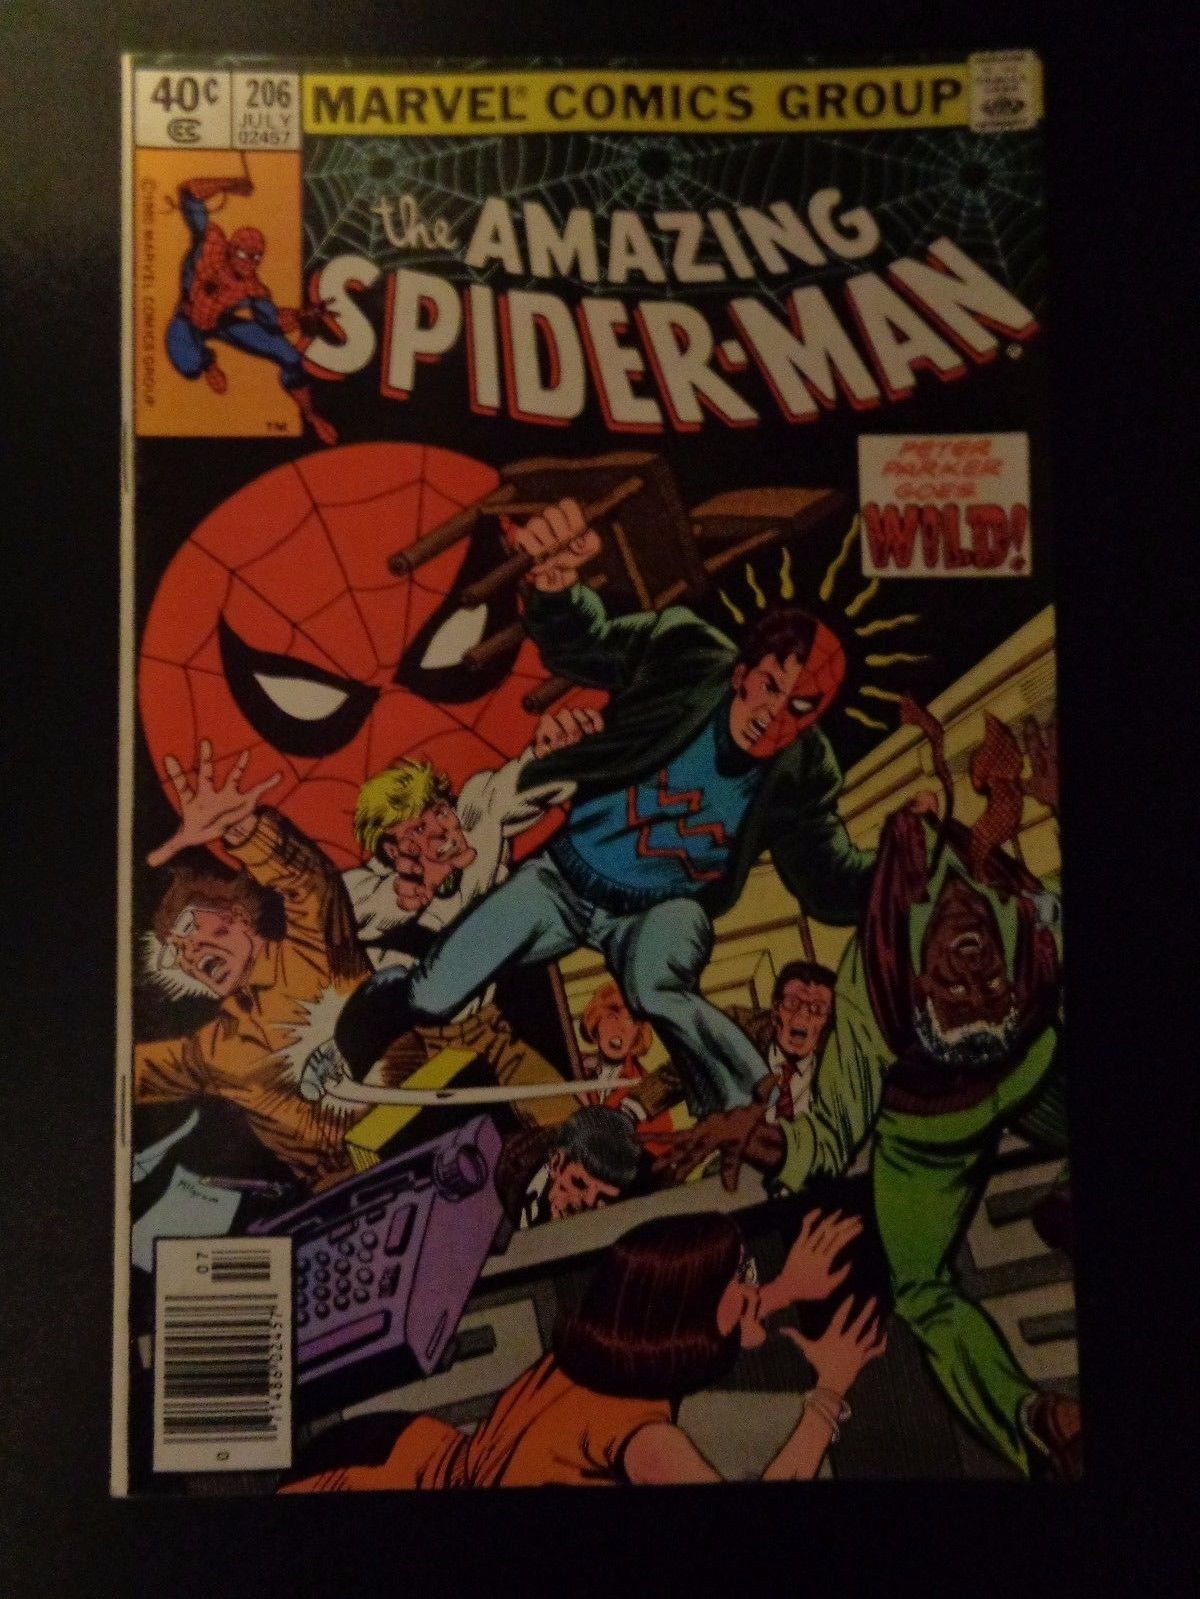 Amazing Spider-Man #206 Marvel Comic Book VF (8.0) Condition 1985 Awesome Book!